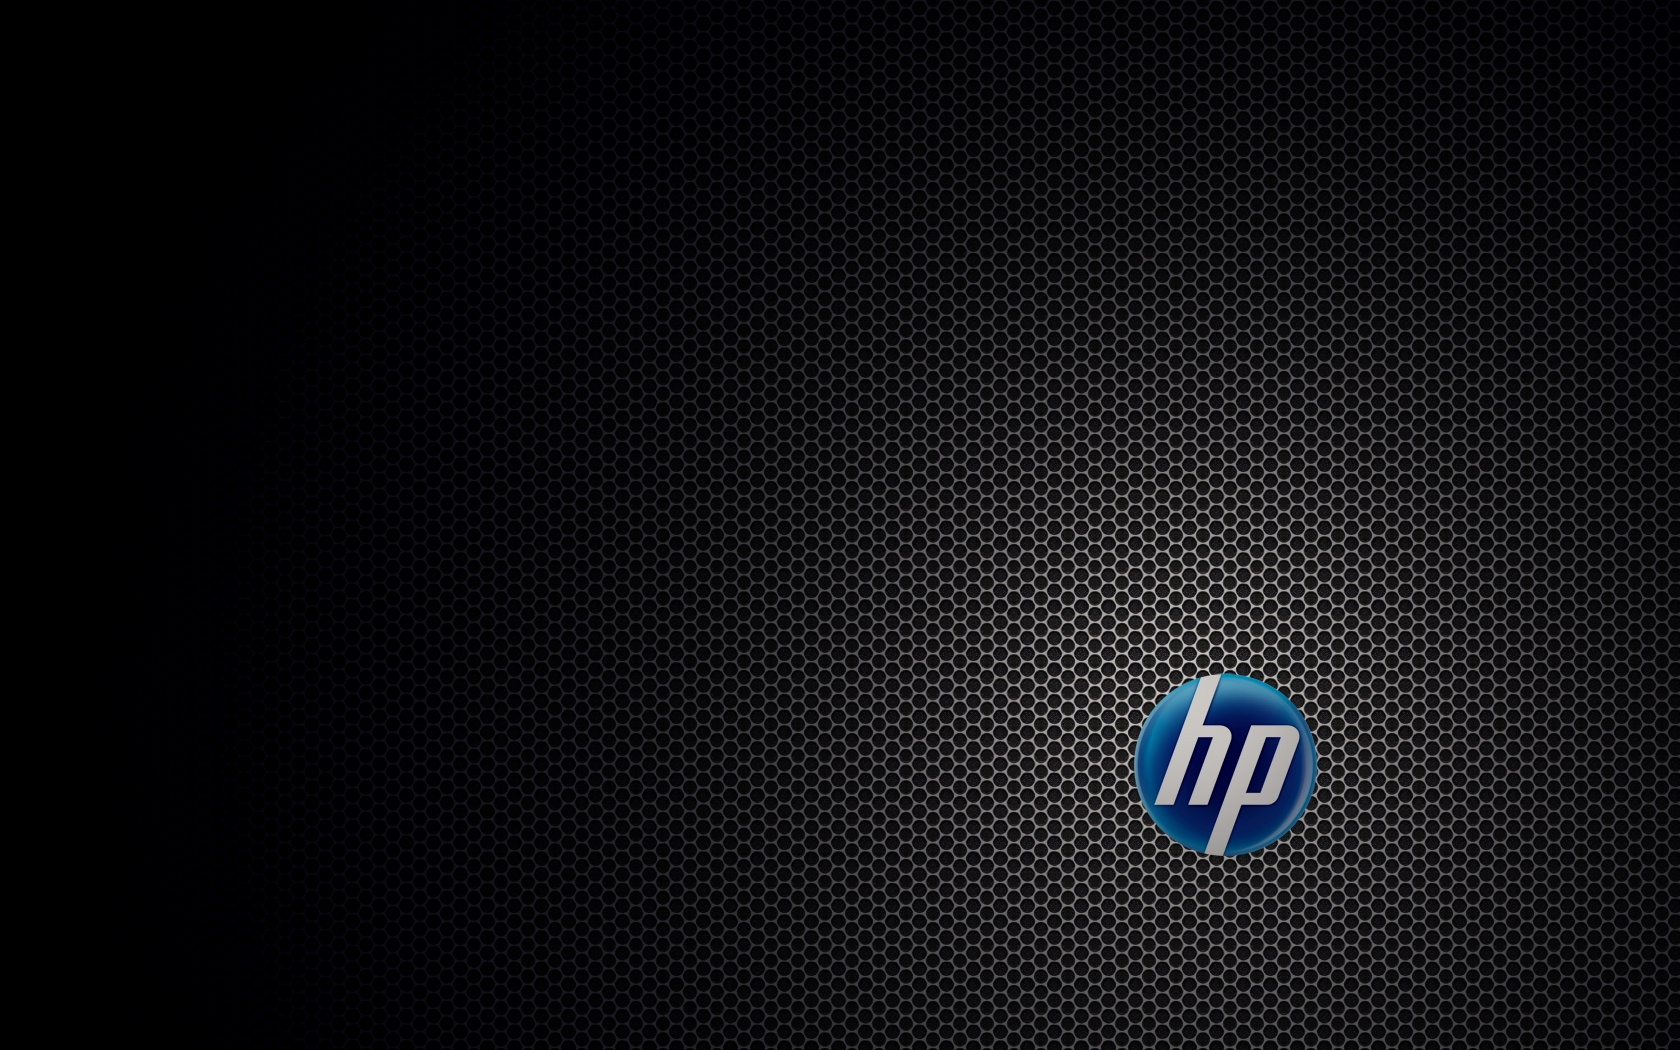 1680x1050 - Wallpapers for HP Envy 53